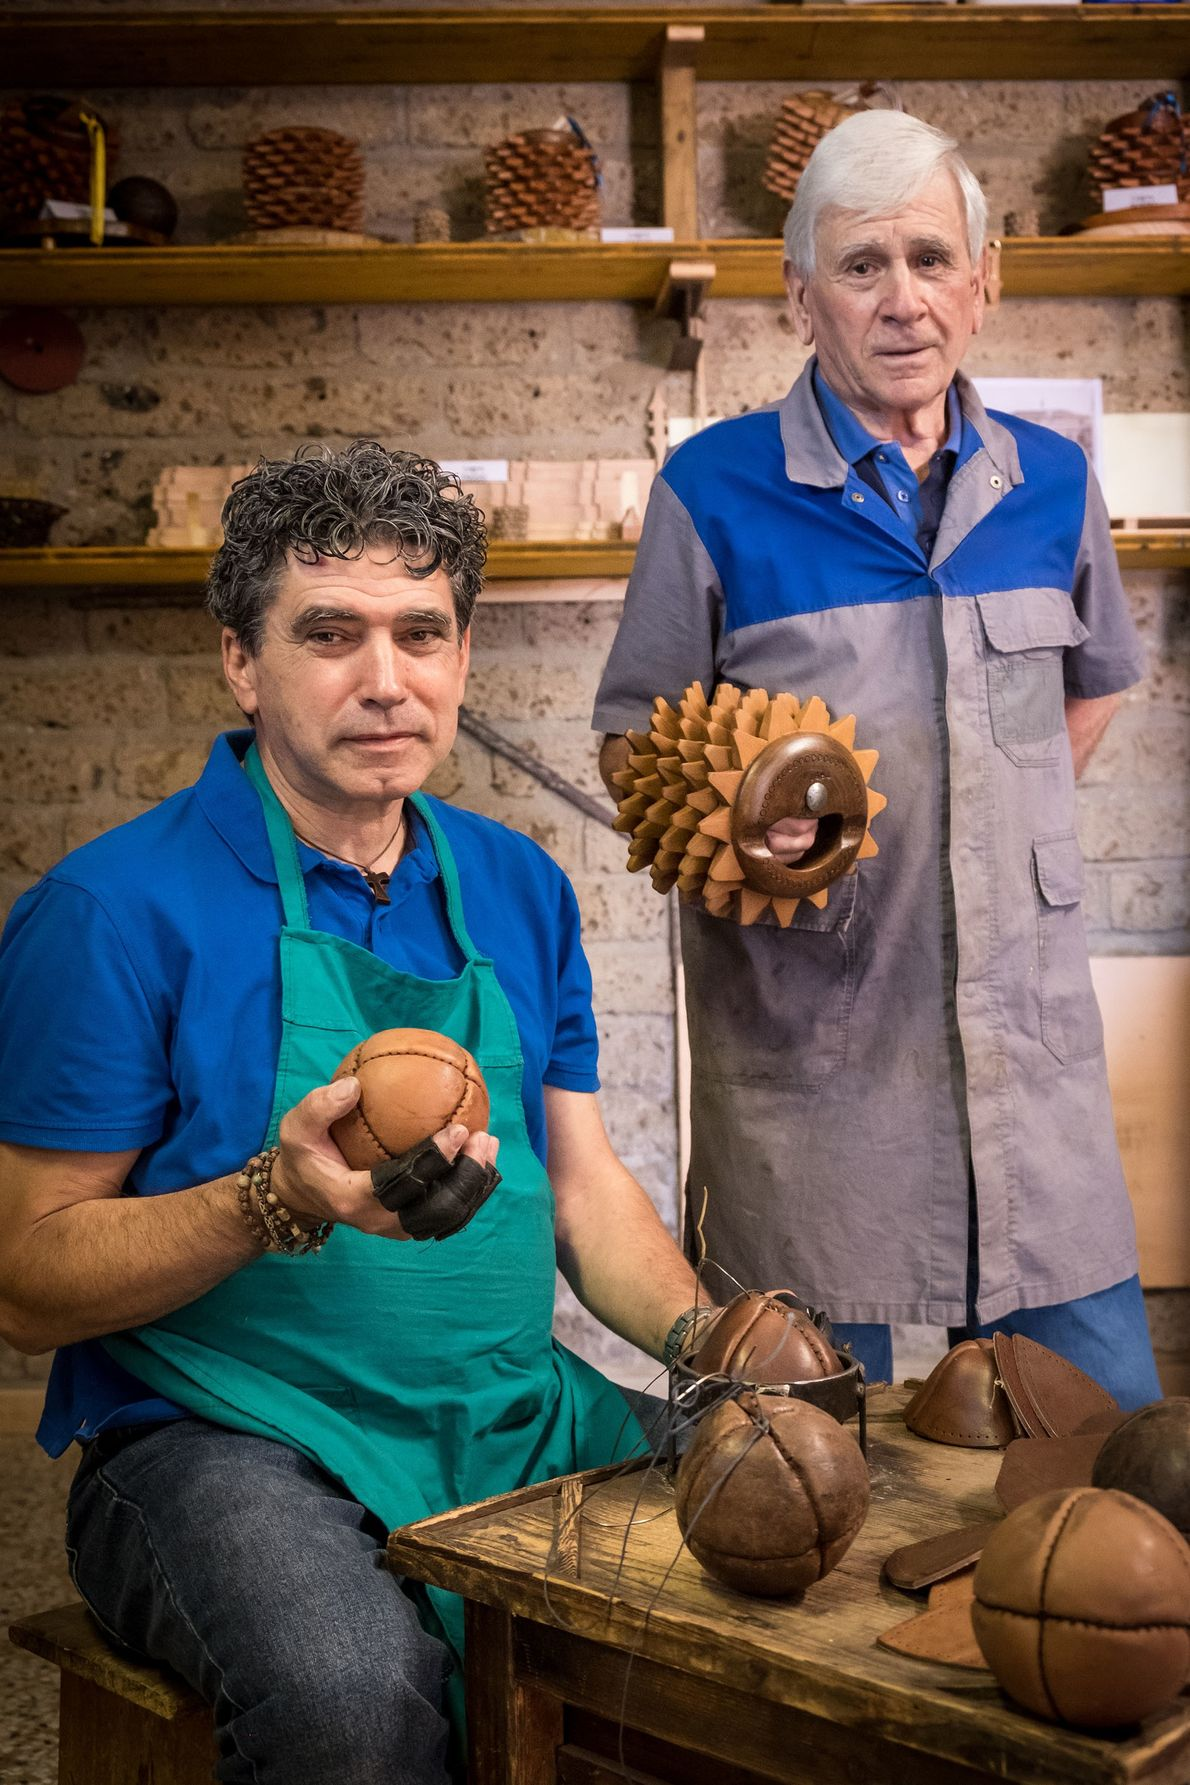 Craftsmen Daniele Rango (left) and Nazareno Crescimbeni (right) pose in their workshop with leather bracciale balls.